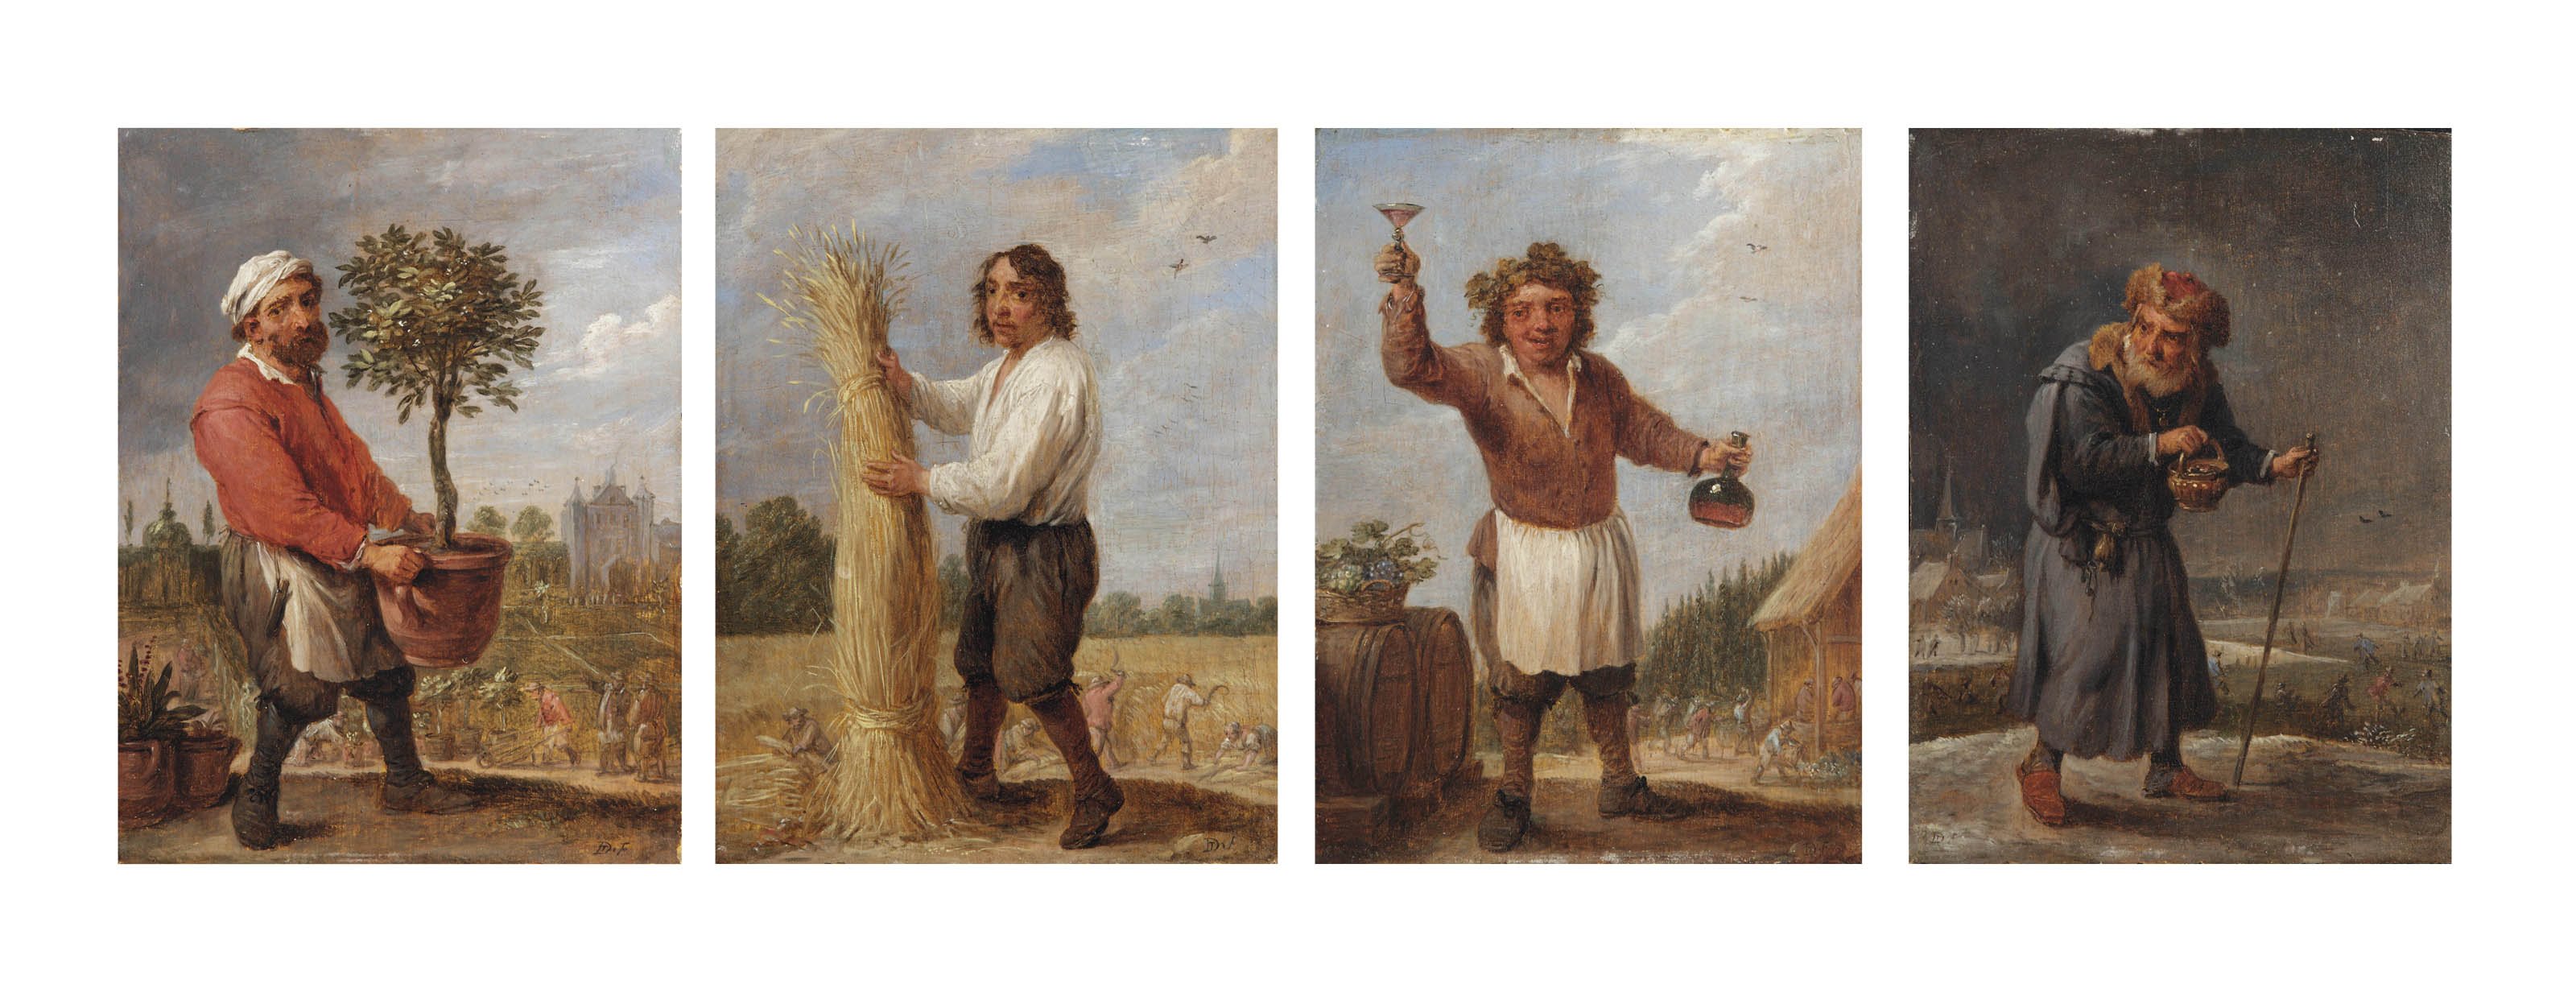 An Allegory of the Four Seasons: Spring, Summer, Autumn and Winter